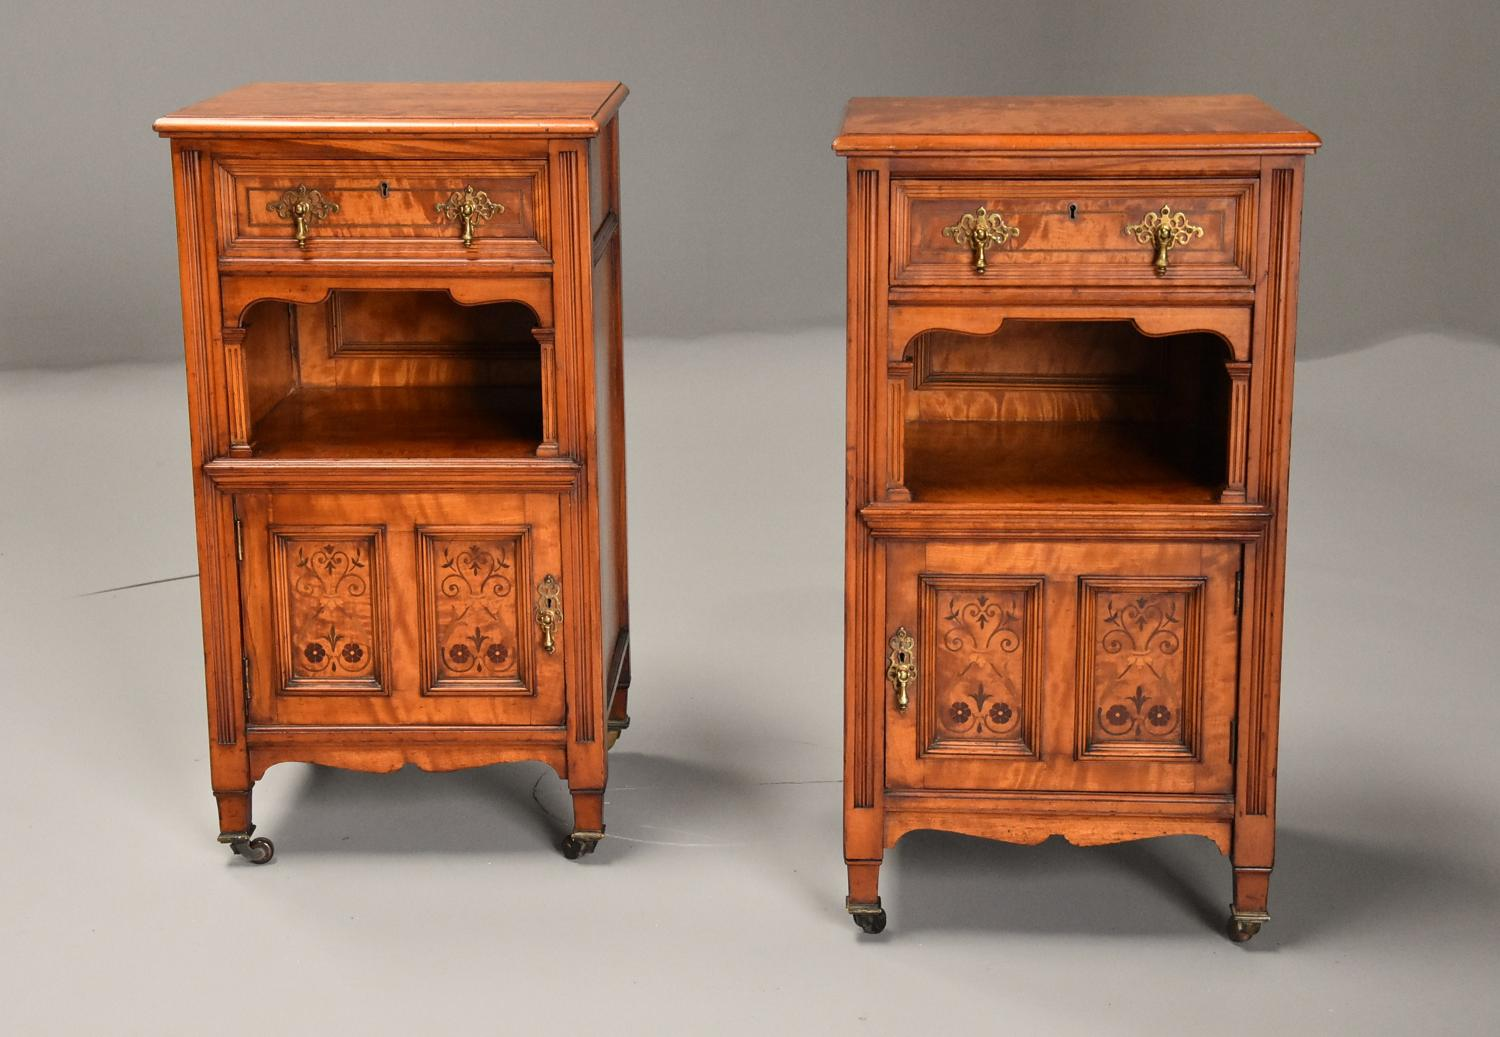 Pair of 19thc satin birch bedside cabinets with Aesthetic influence